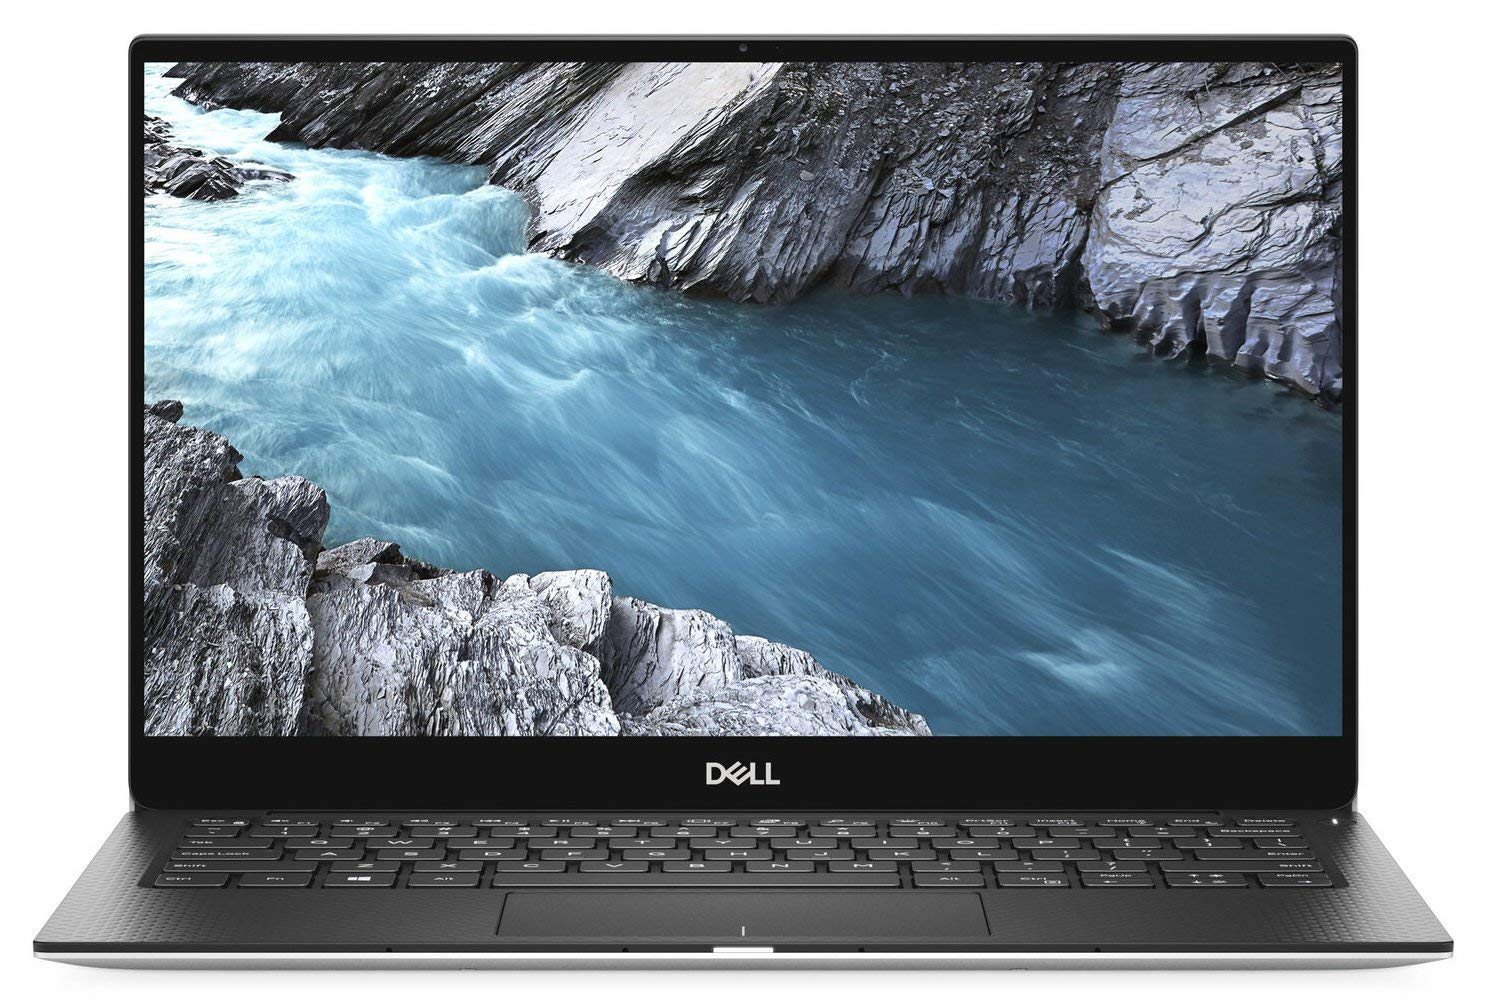 How to take a screenshot on Dell XPS 15